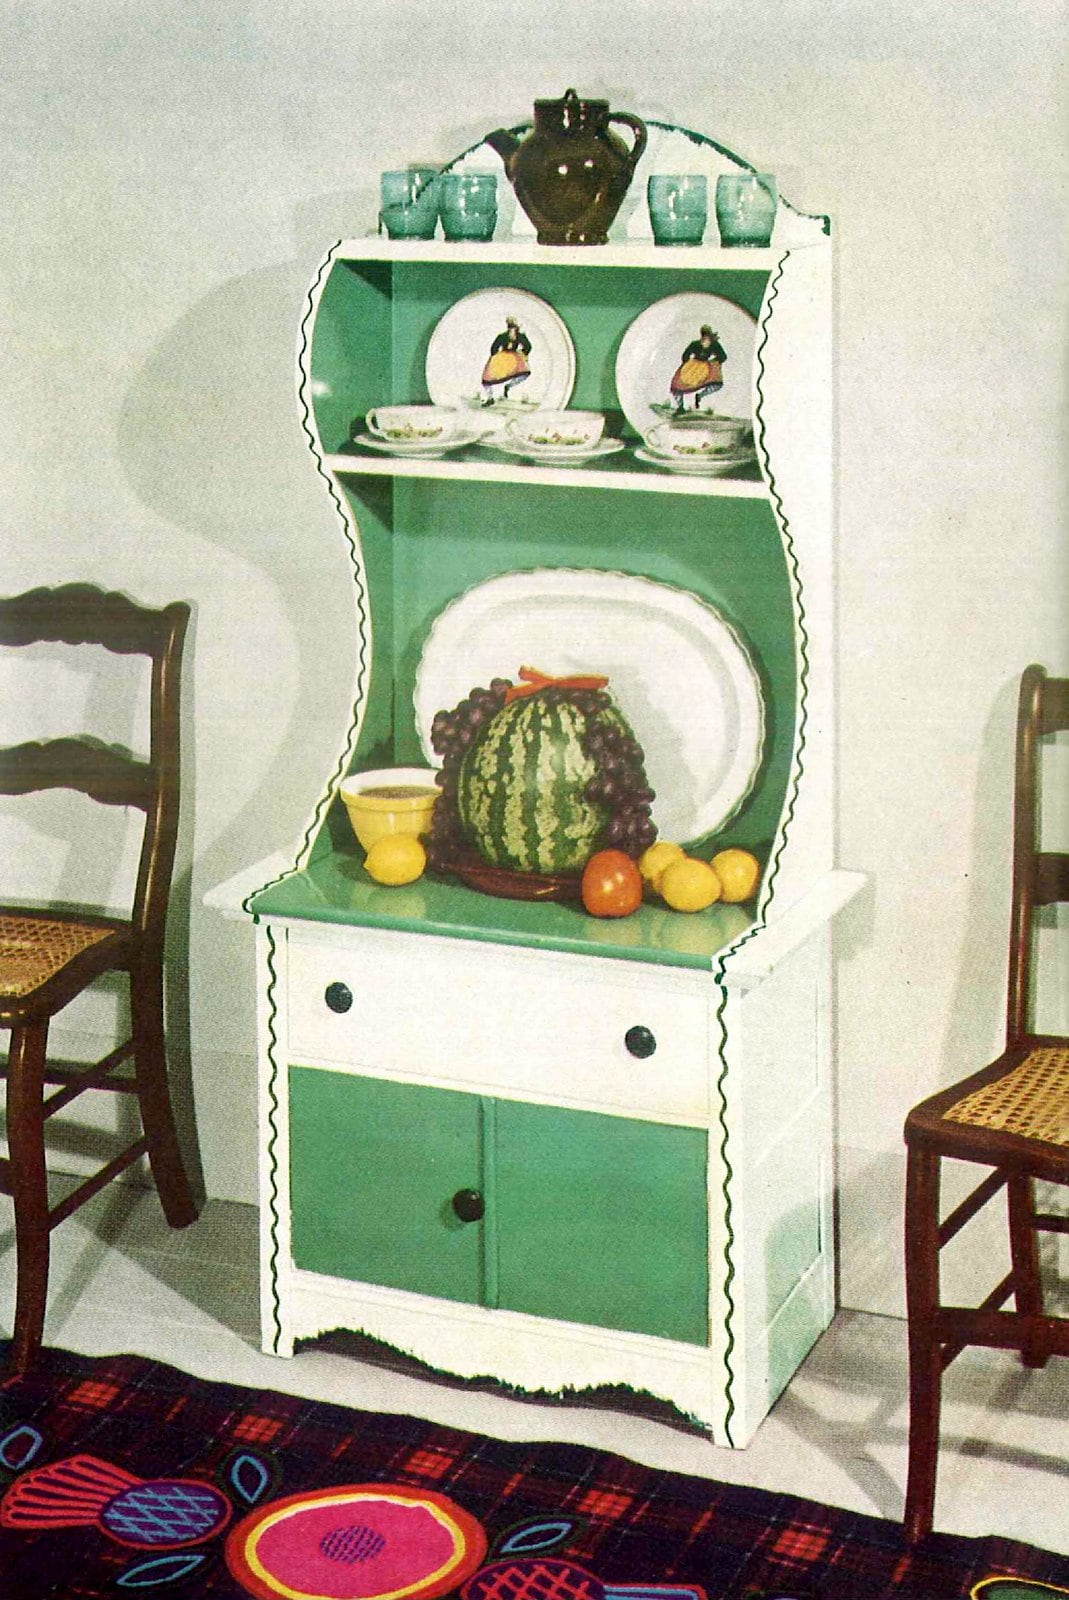 Antique kitchen hutch painted white and green